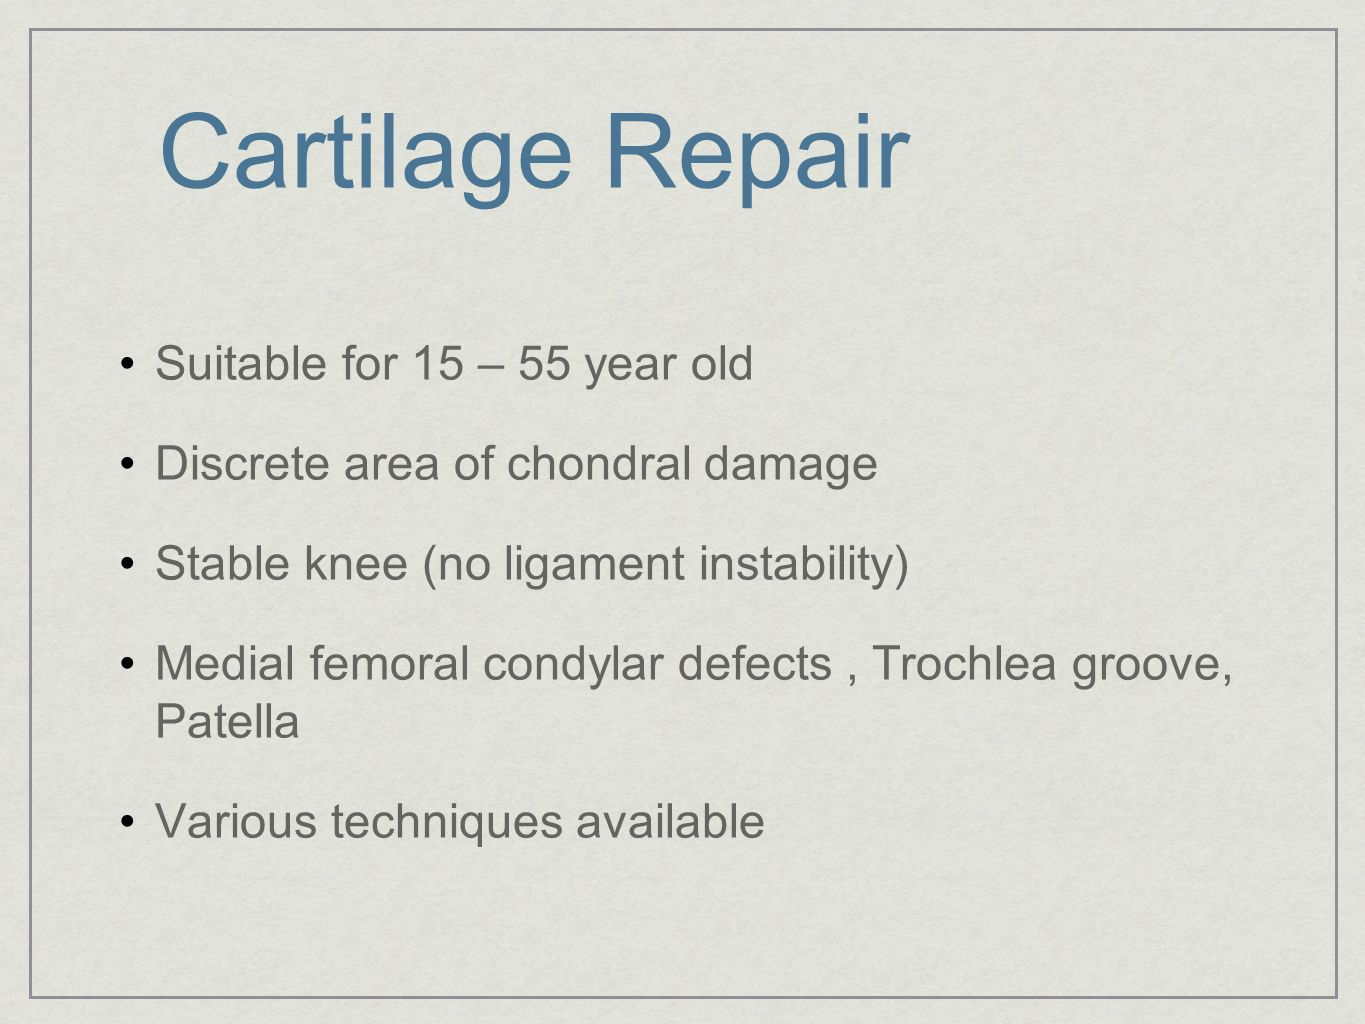 Cartilage Repair Suitable for 15 – 55 year old